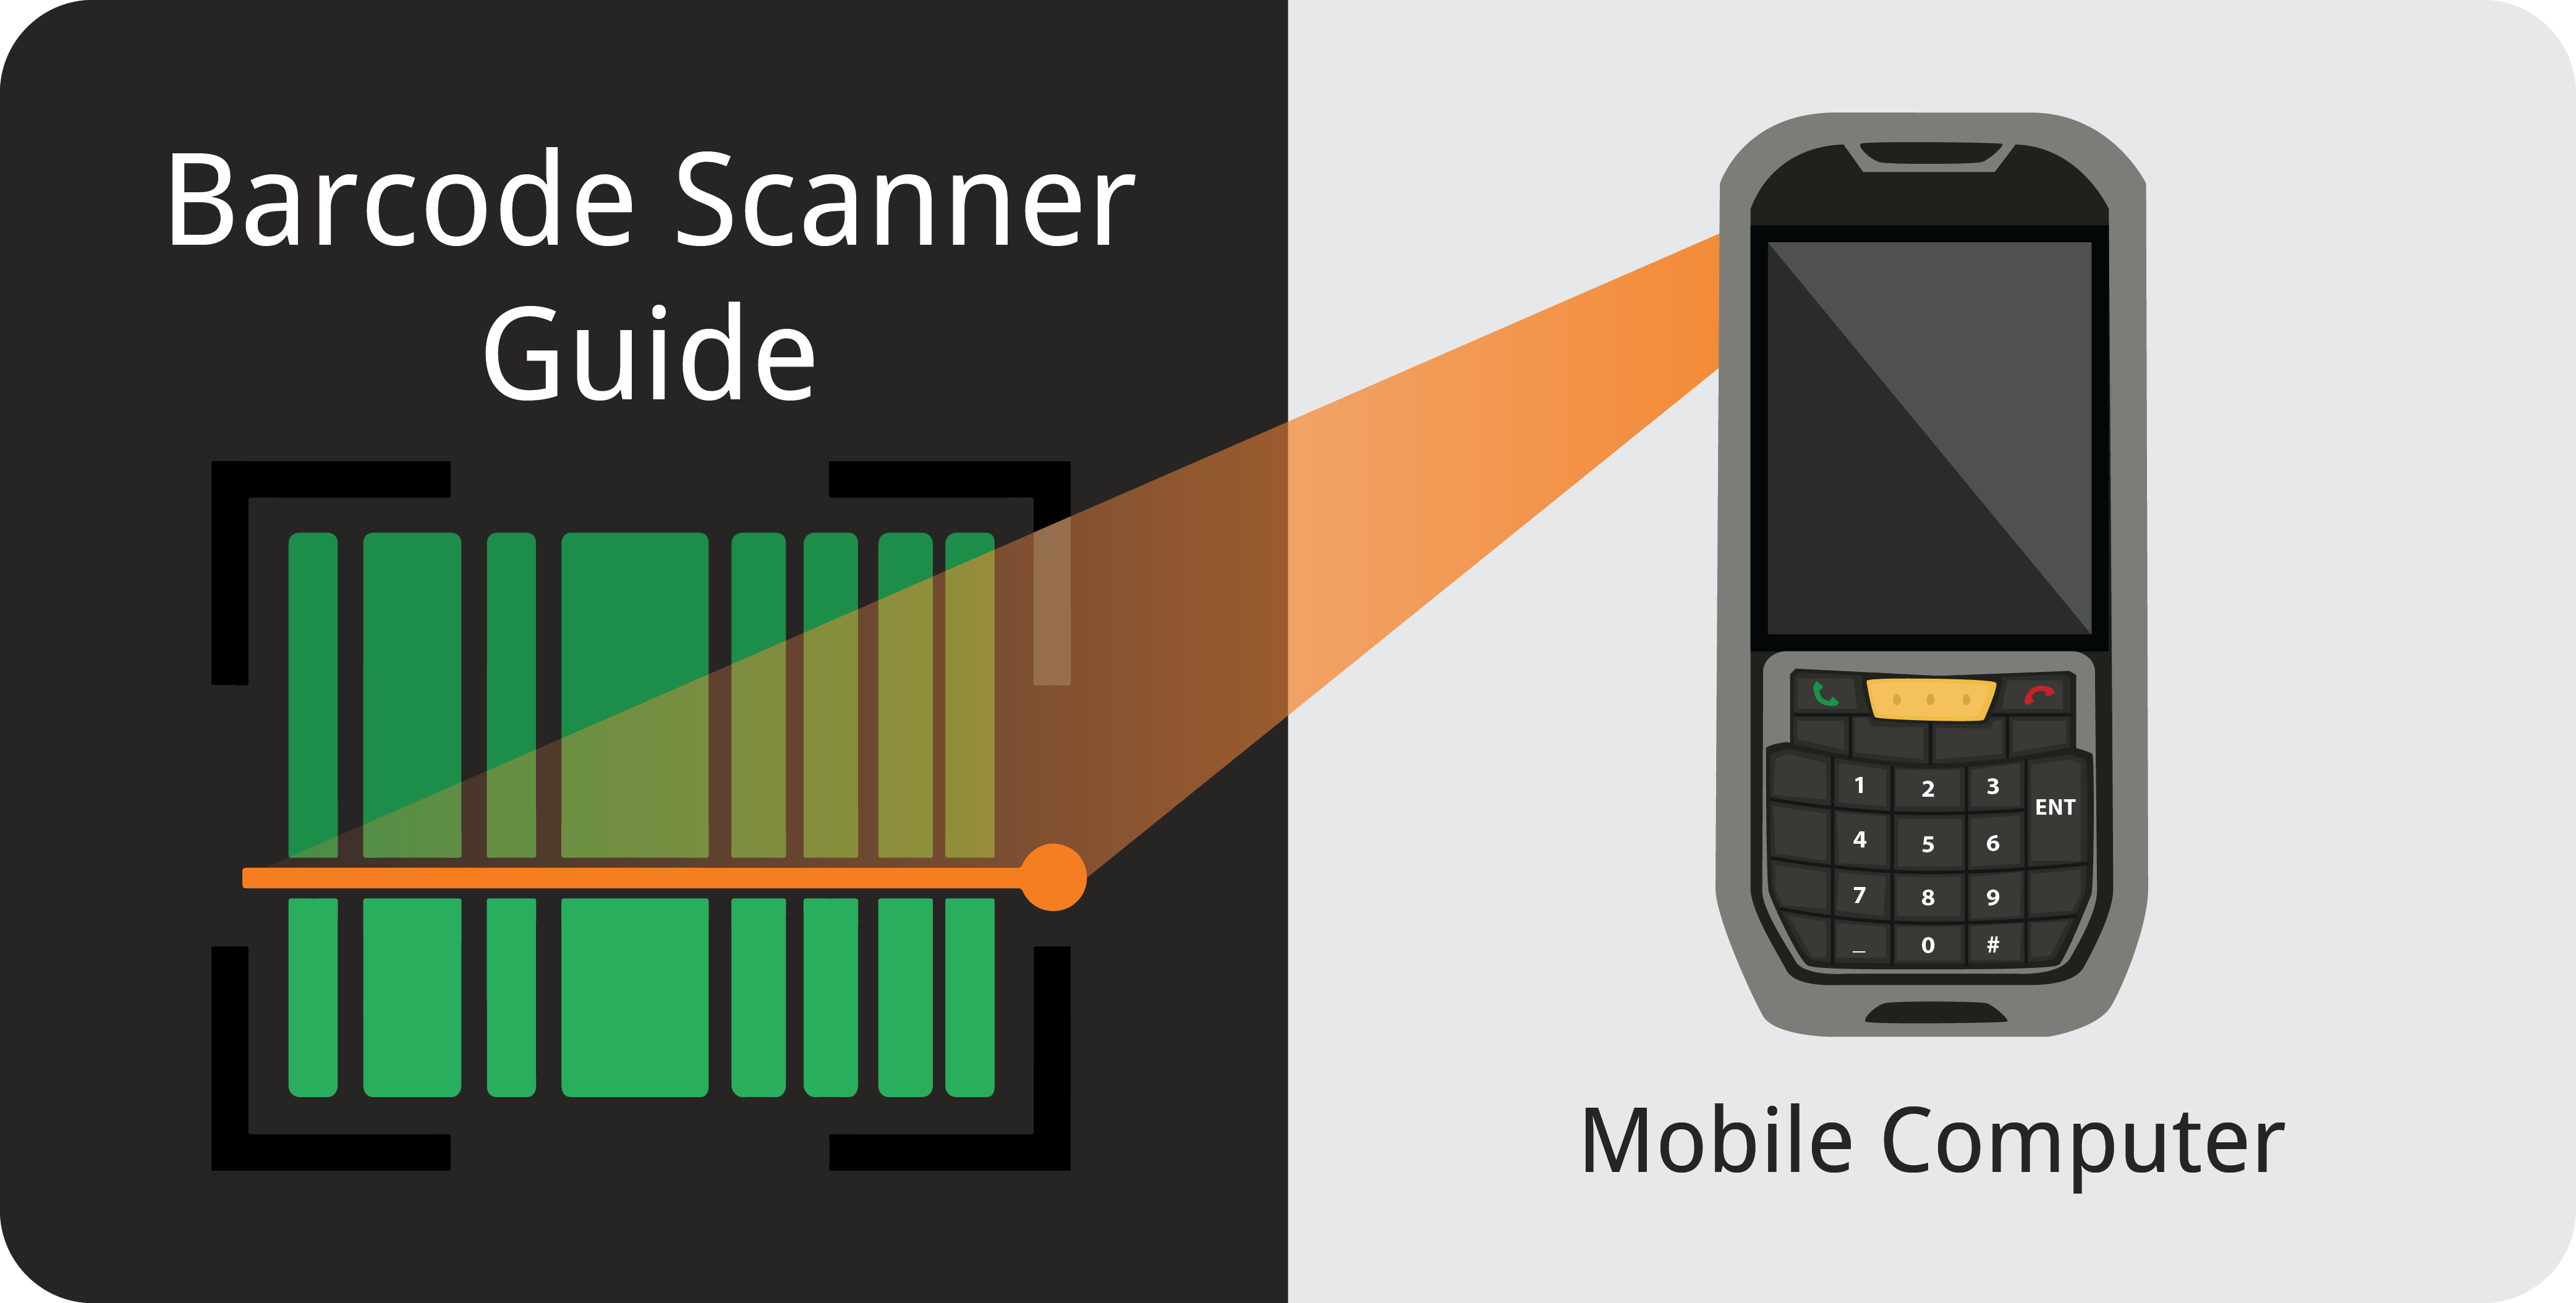 Barcode Scanner Guide Mobile Computer